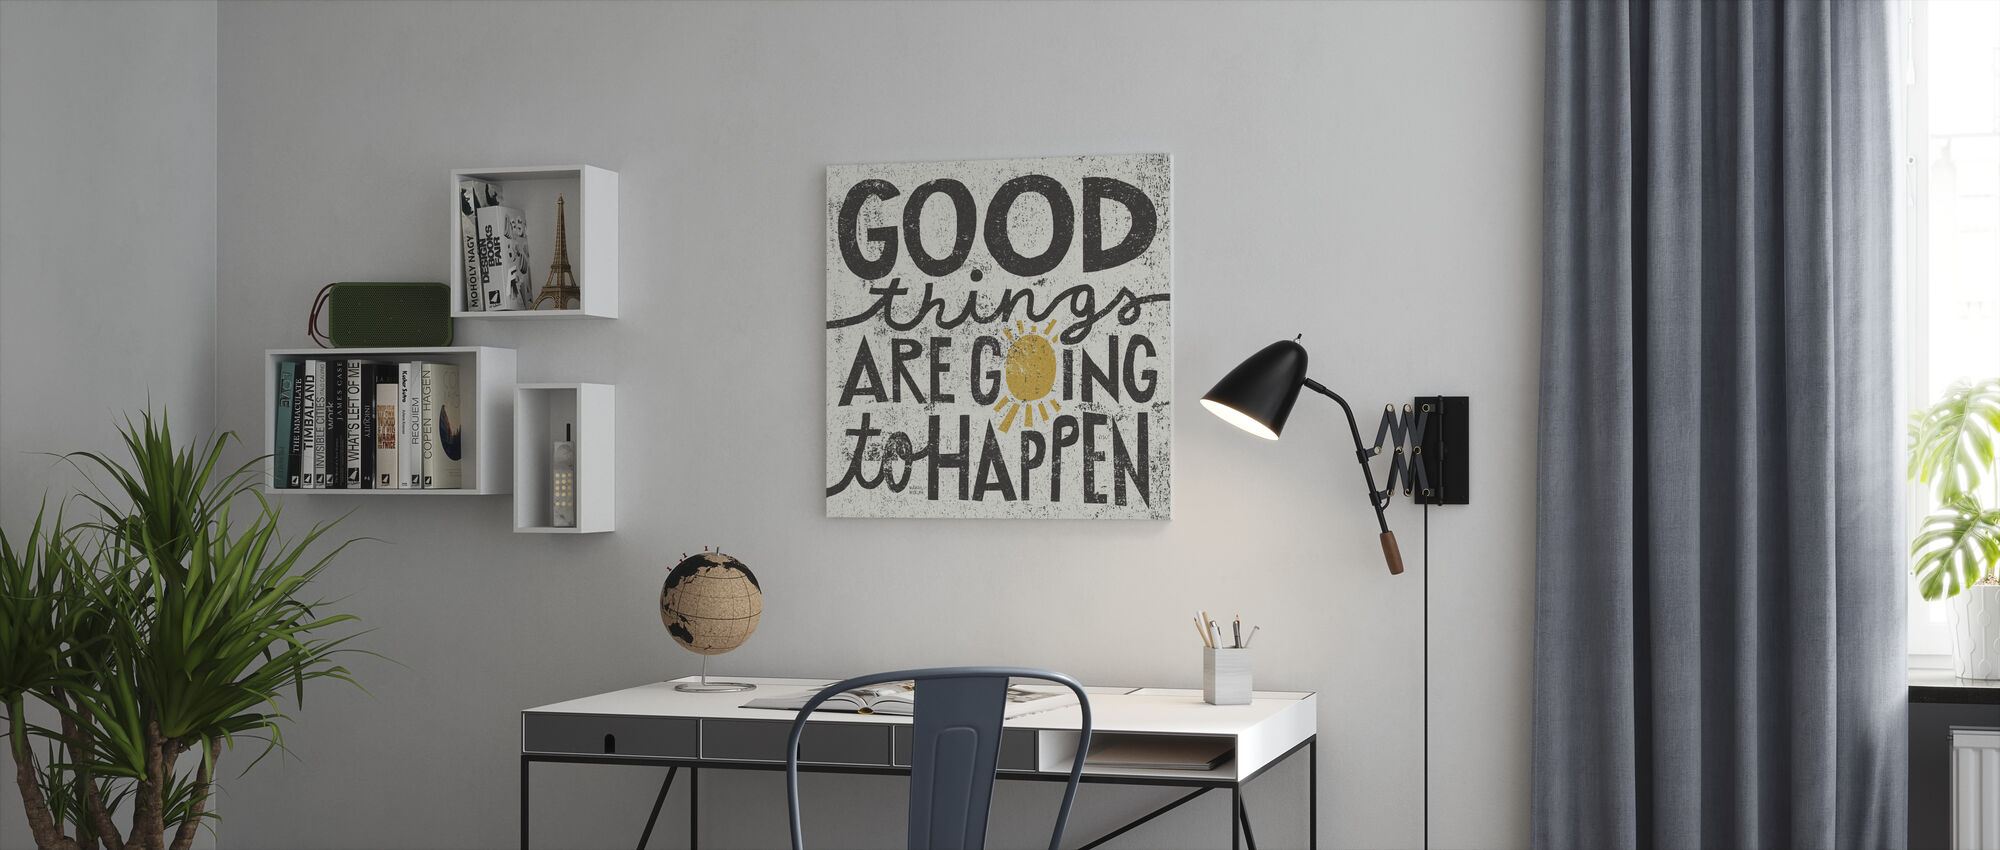 Good Things are Going to Happen - Canvas print - Office